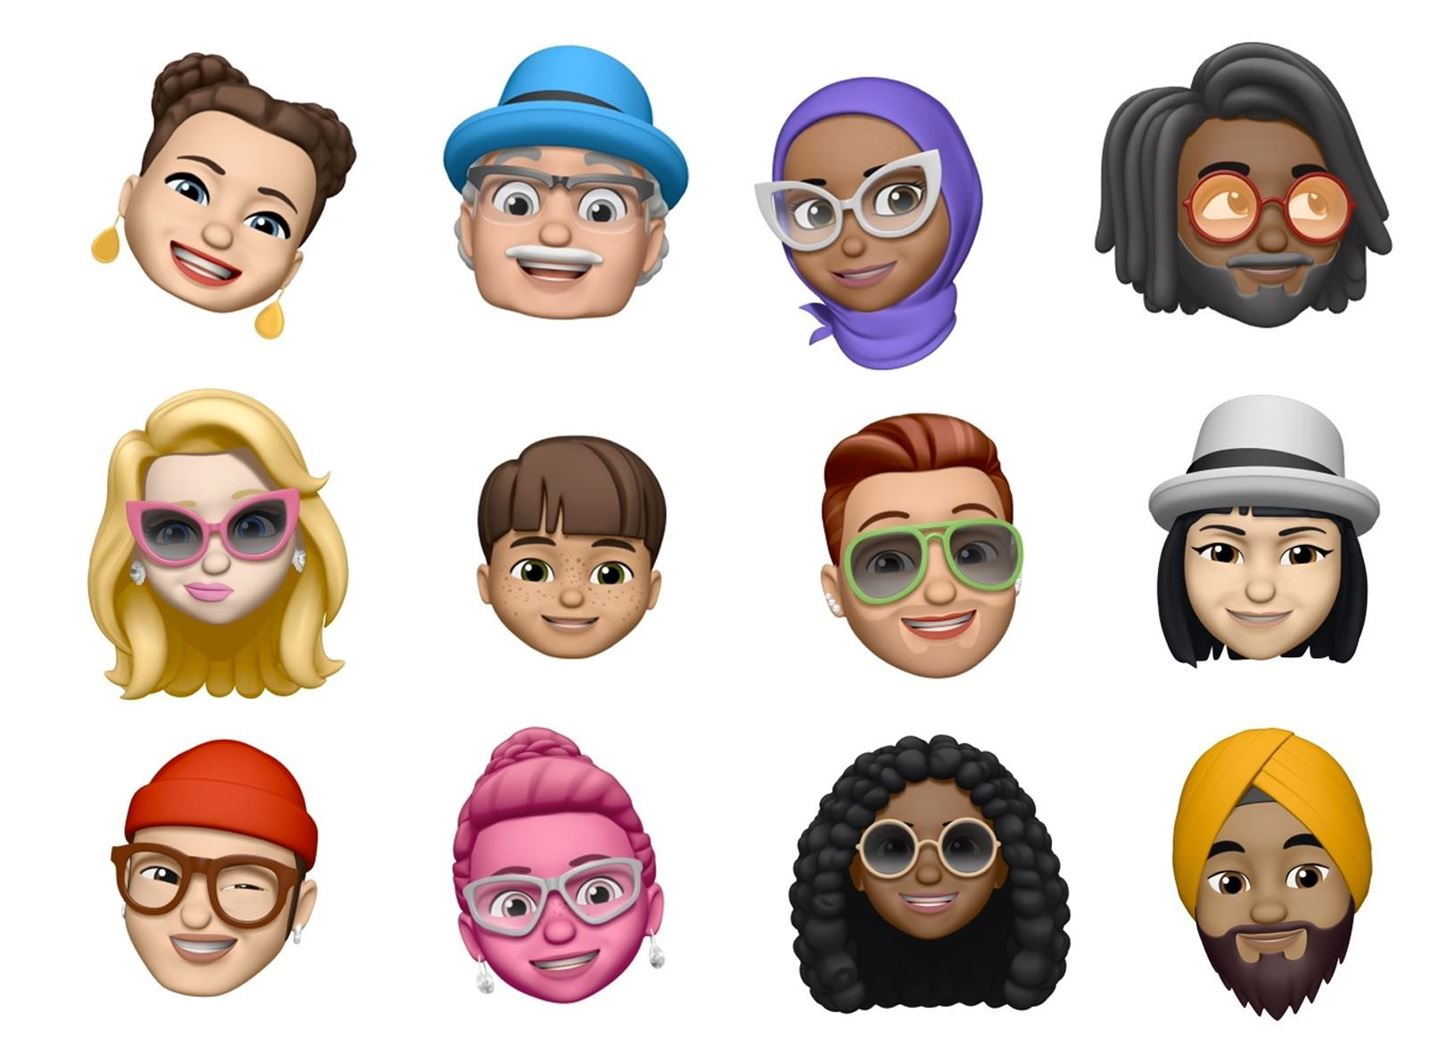 37 cool new features of iOS 12 that you do not know